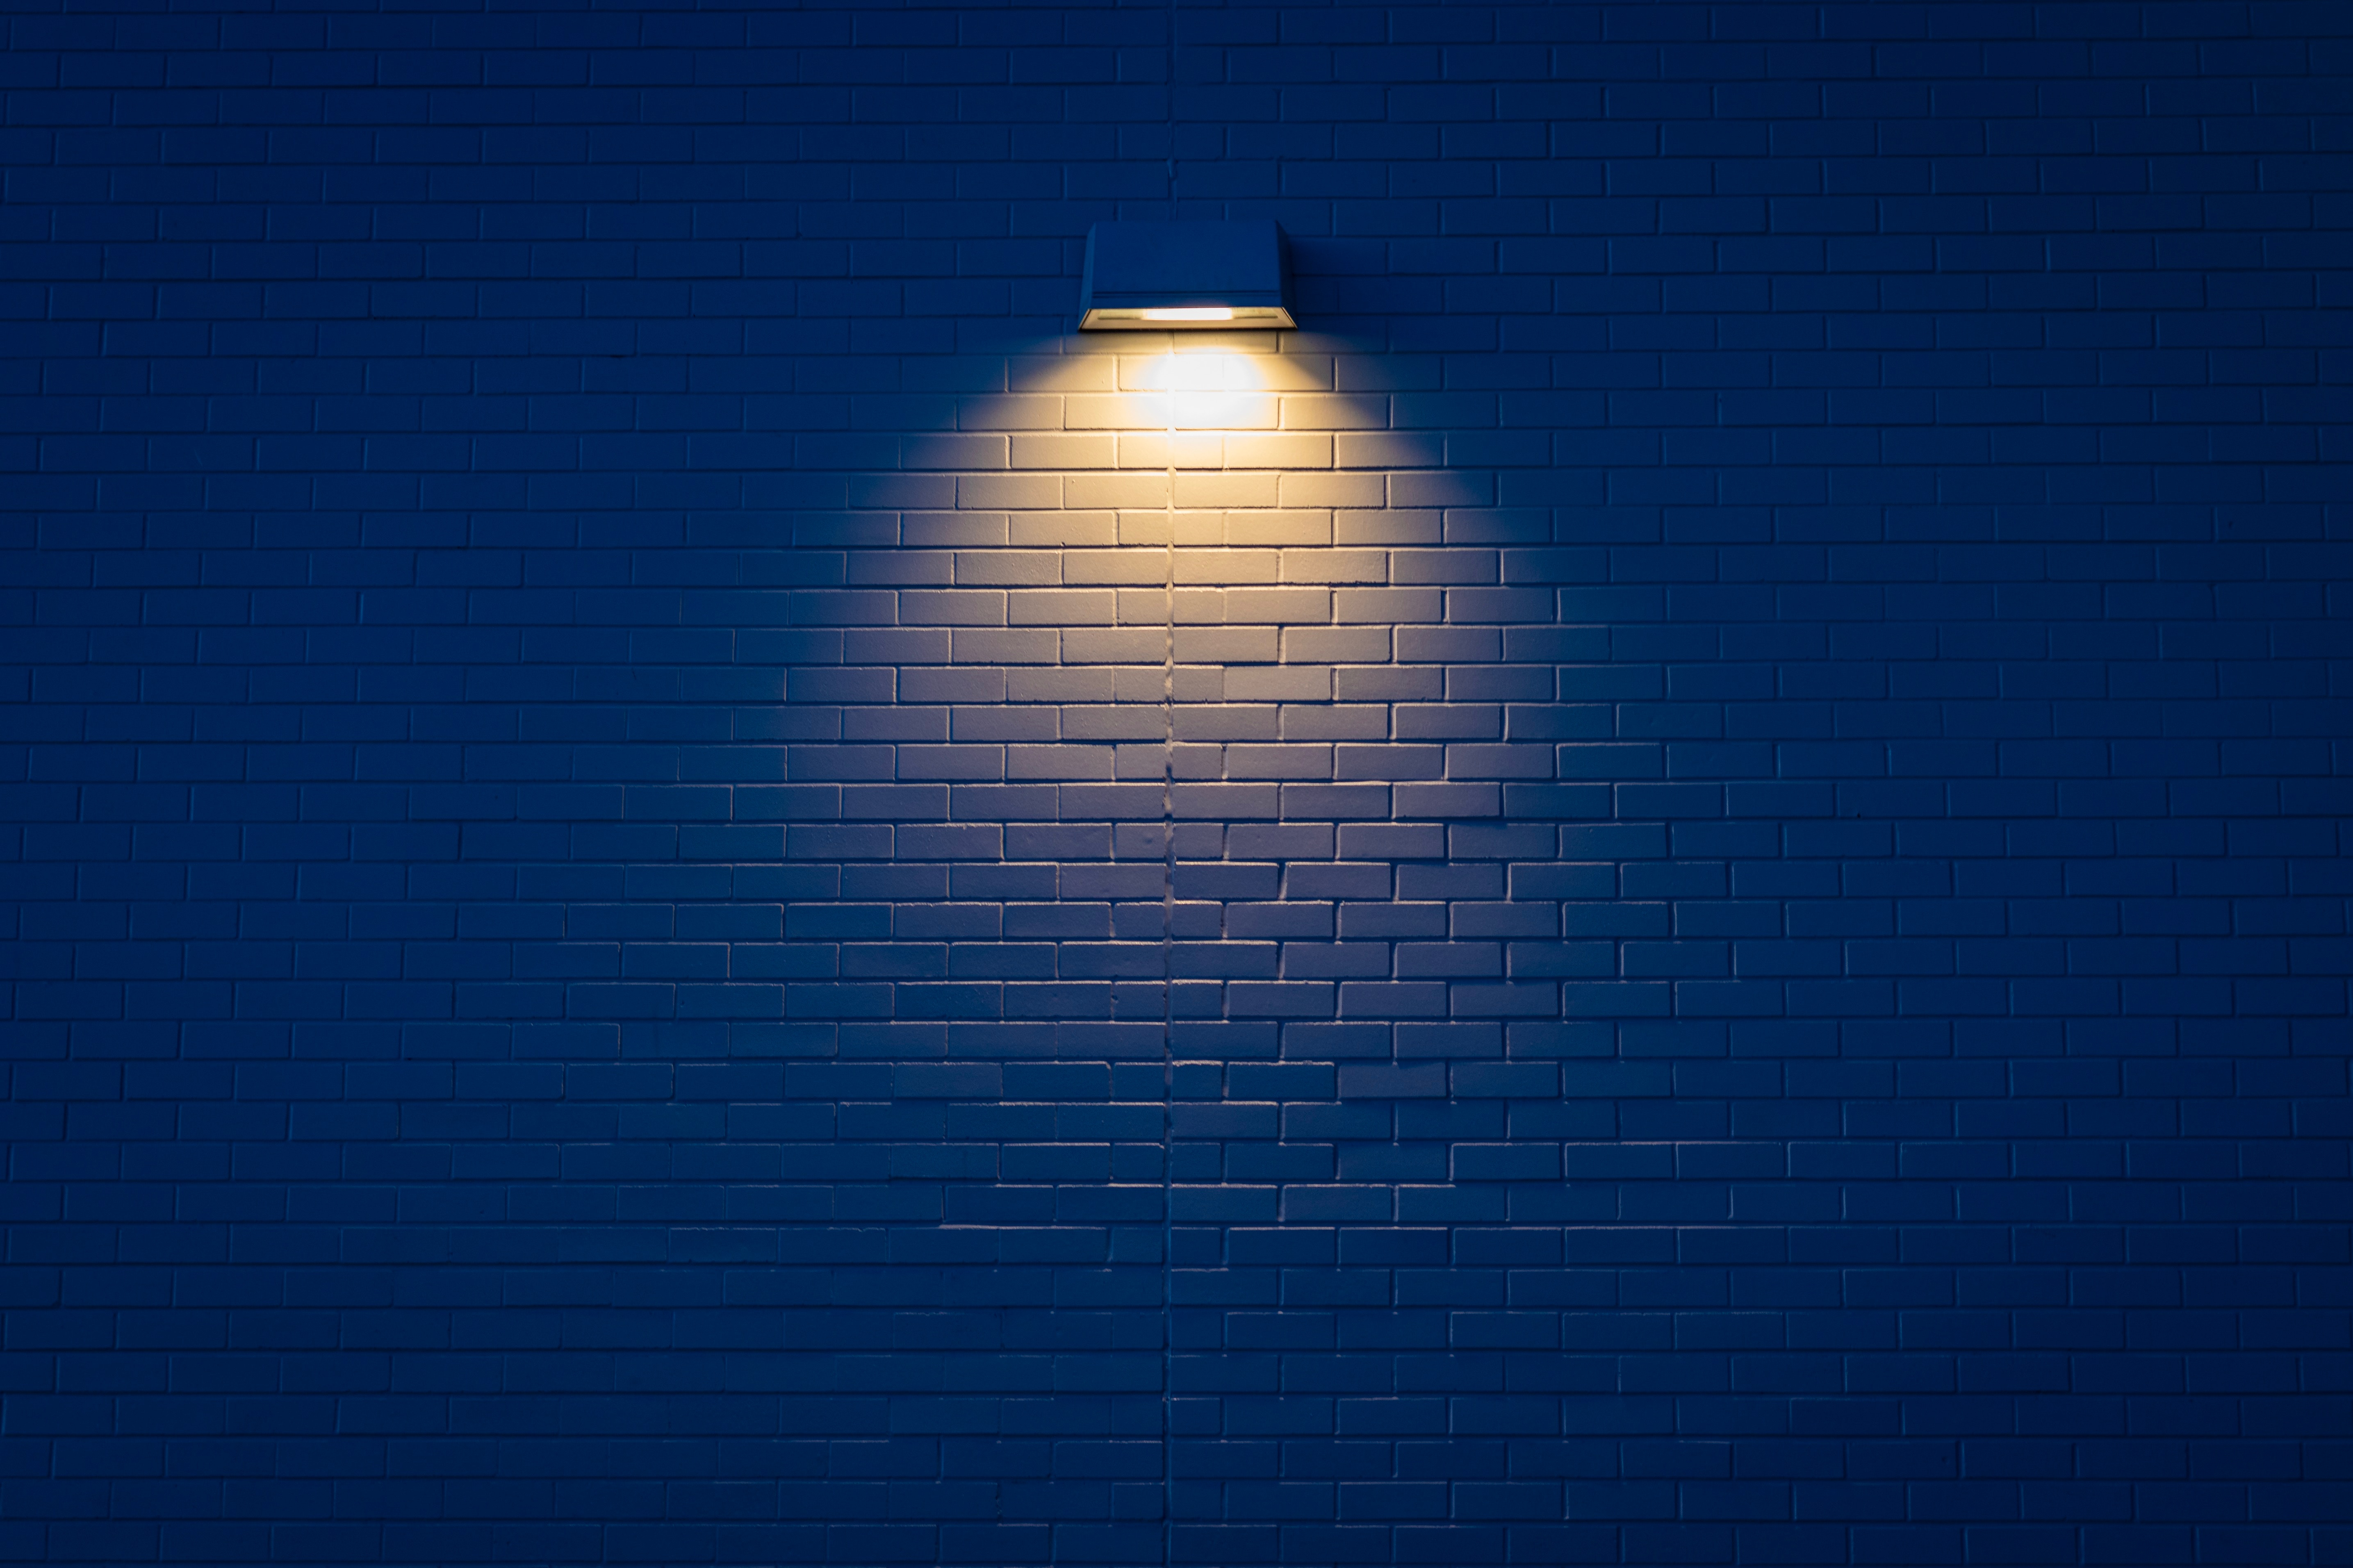 52220 download wallpaper Wall, Dark, Shine, Light, Lamp, Illumination, Lighting, Brick screensavers and pictures for free